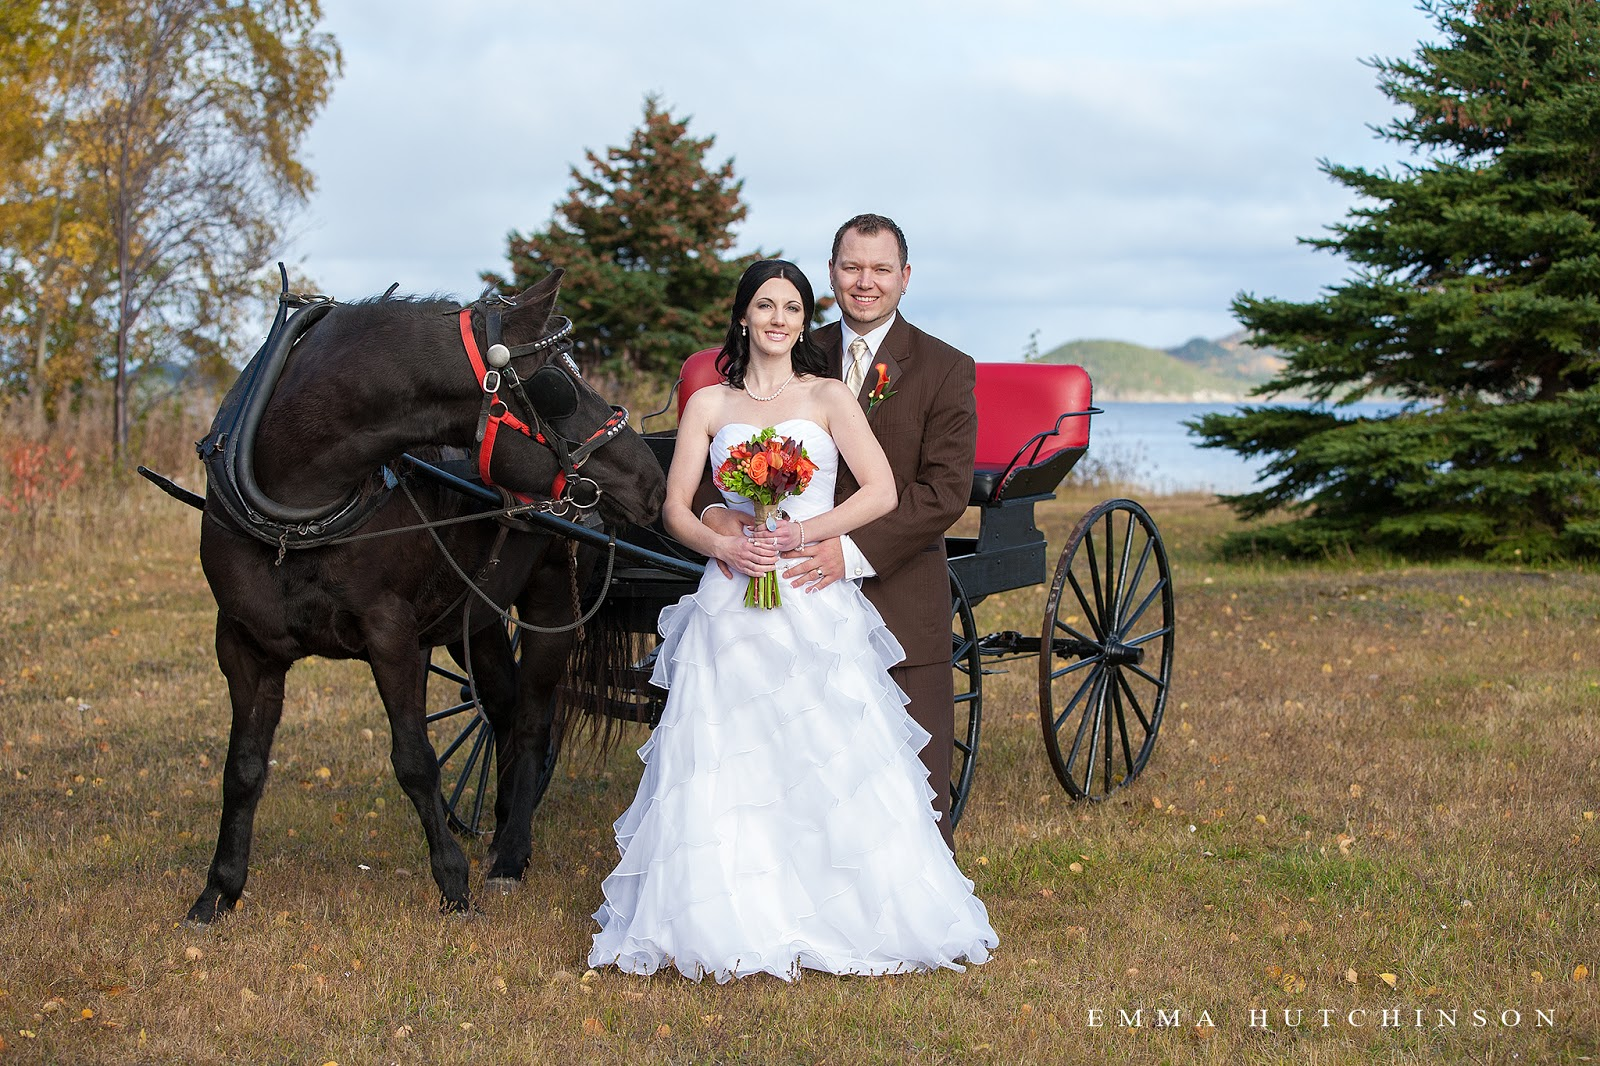 Fall wedding in Lewsiporte, Newfouland - Gunner, the horse was interested in the Bride's bouquet